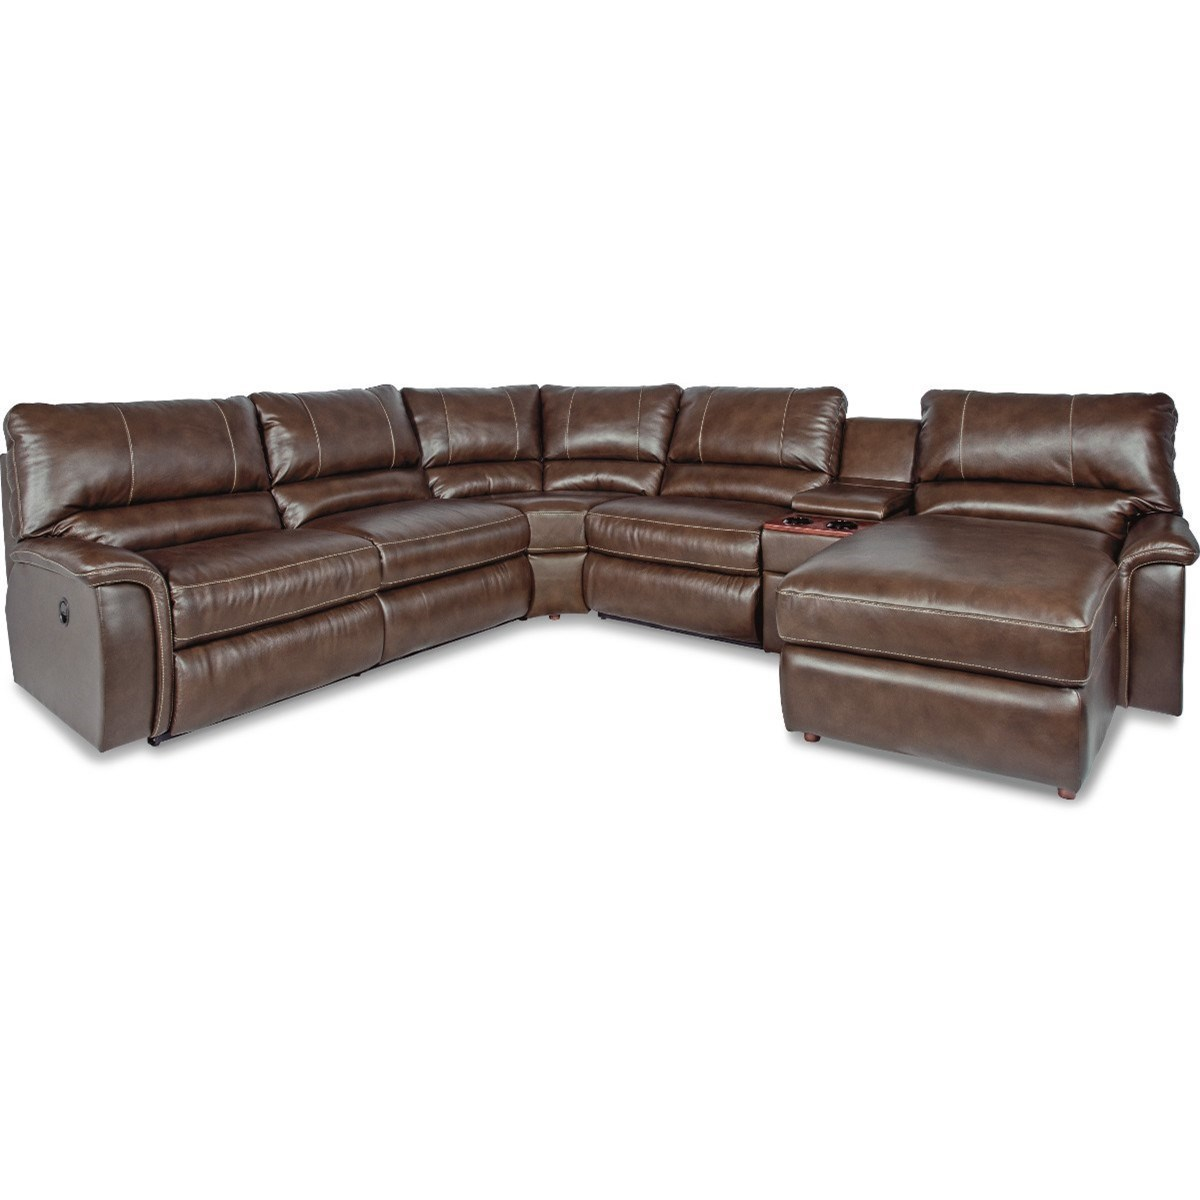 aspen 6 pc pwr reclining sectional sofa